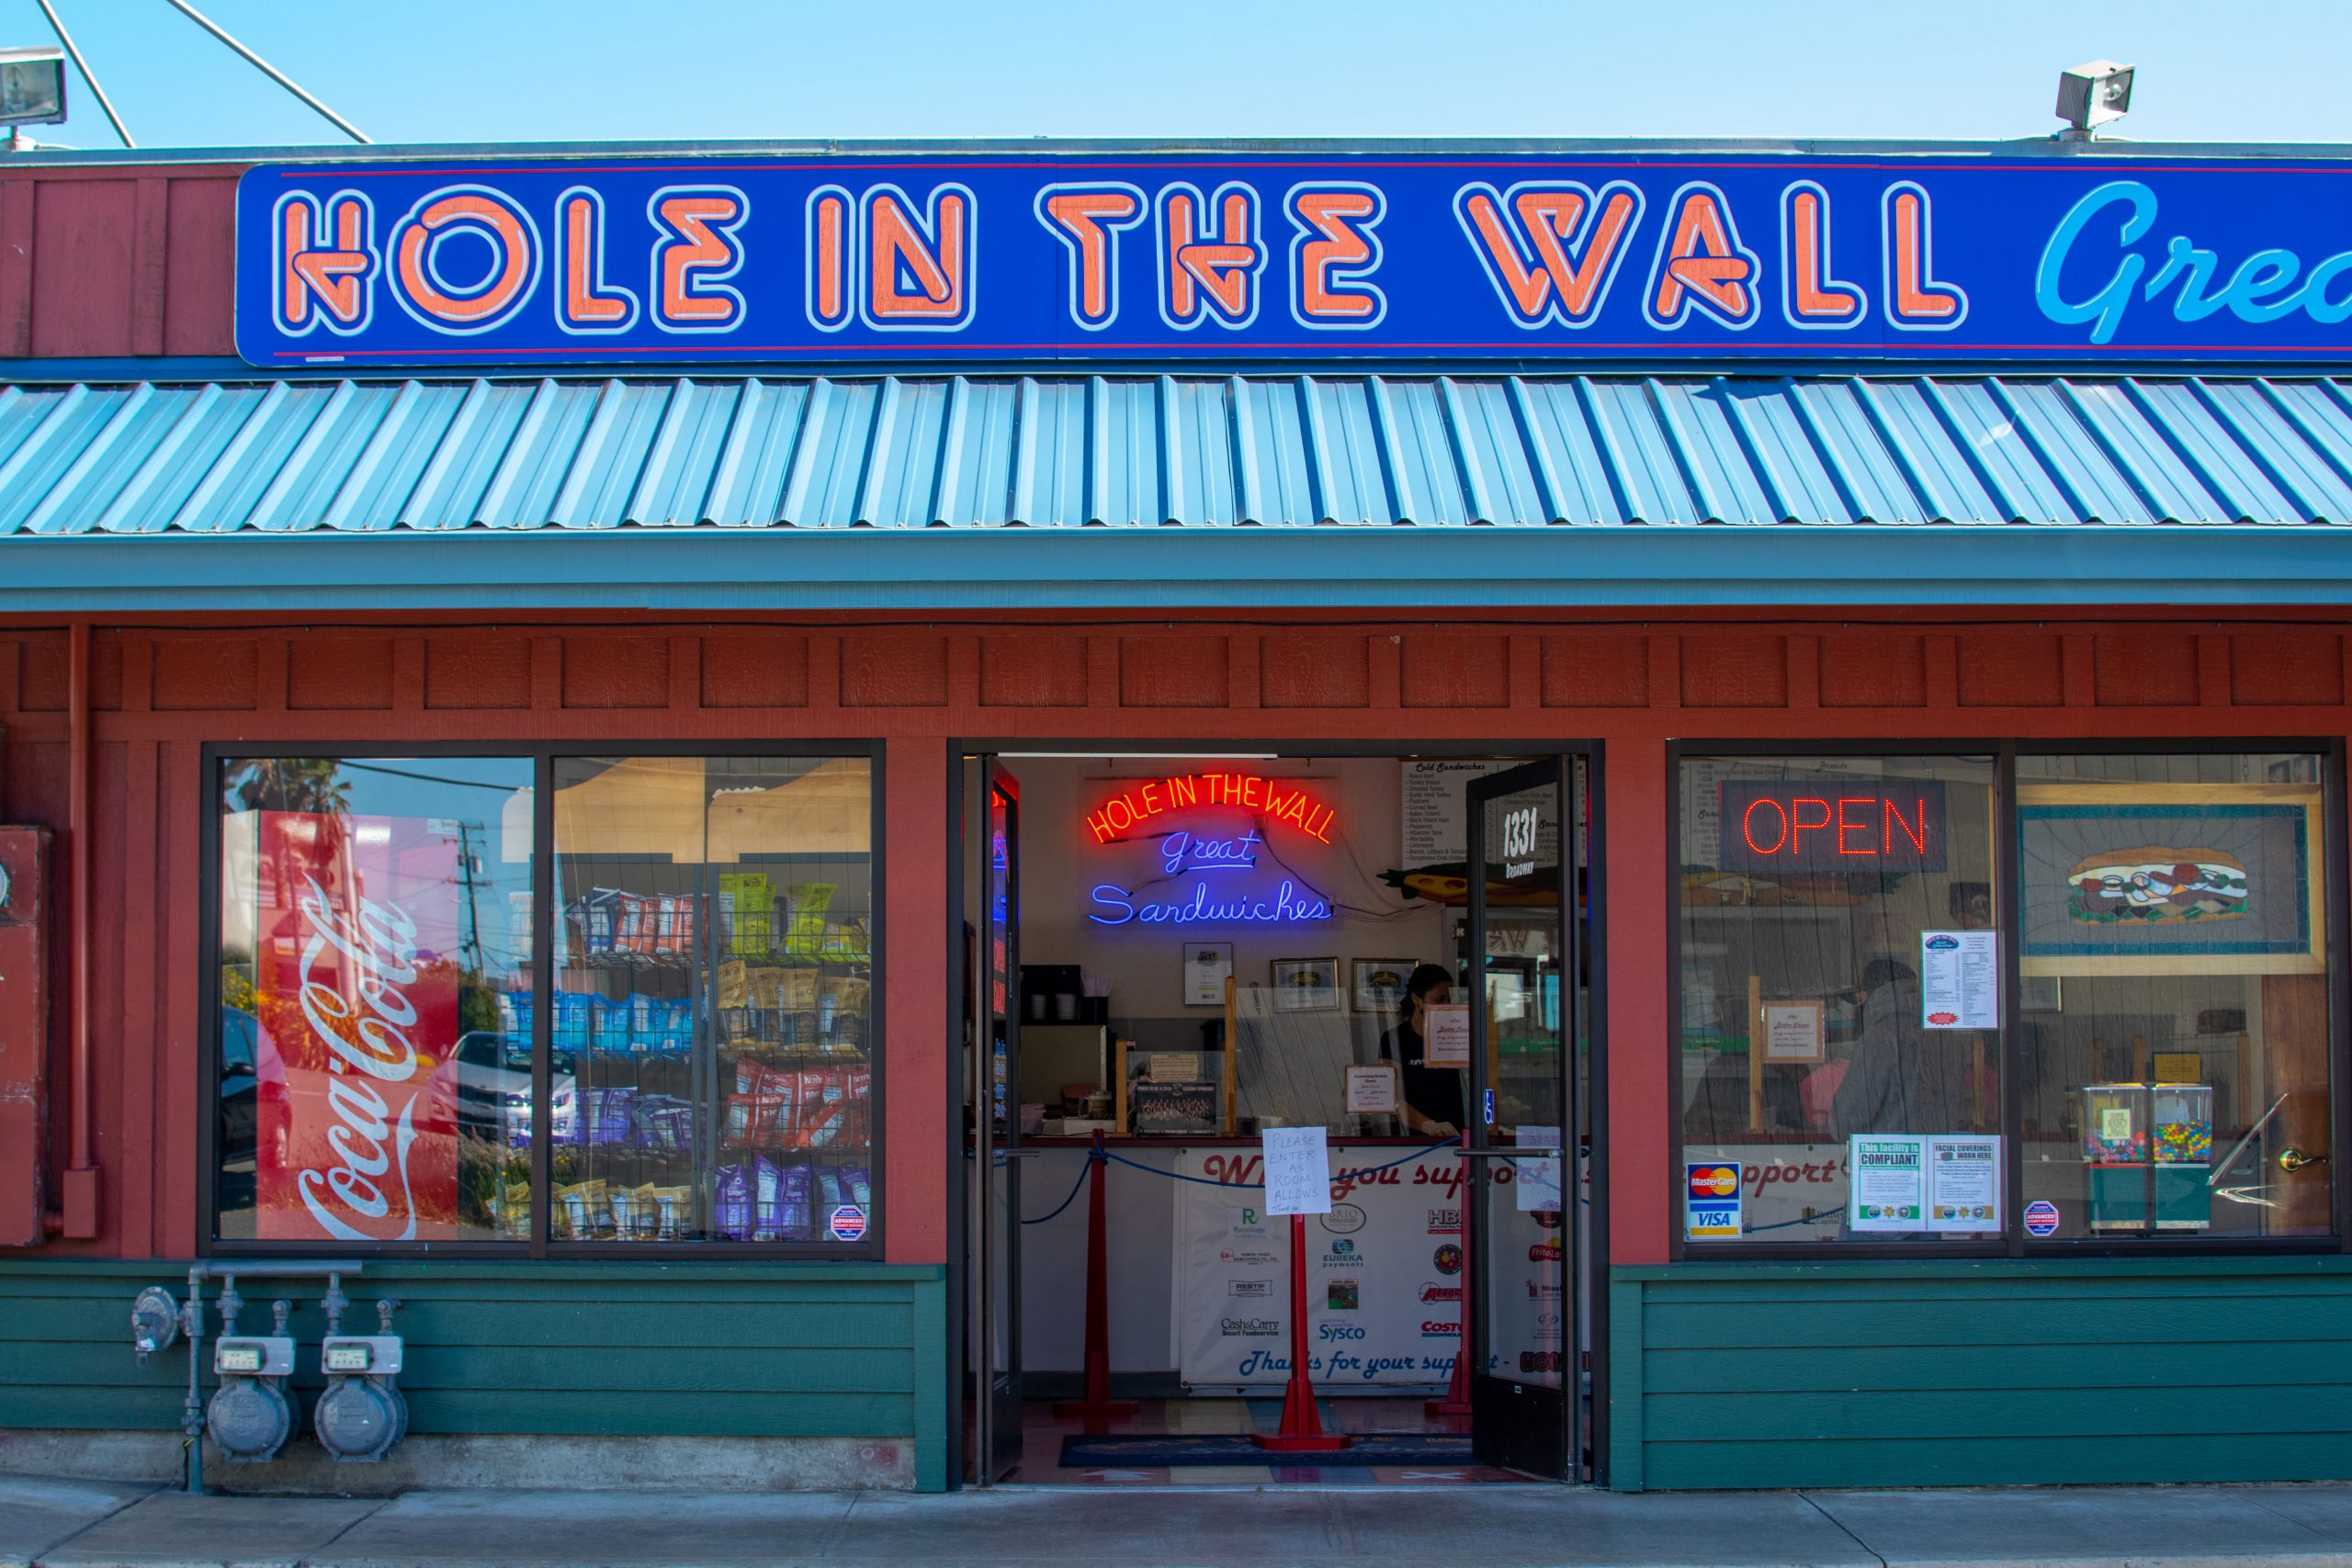 Hole in the Wall